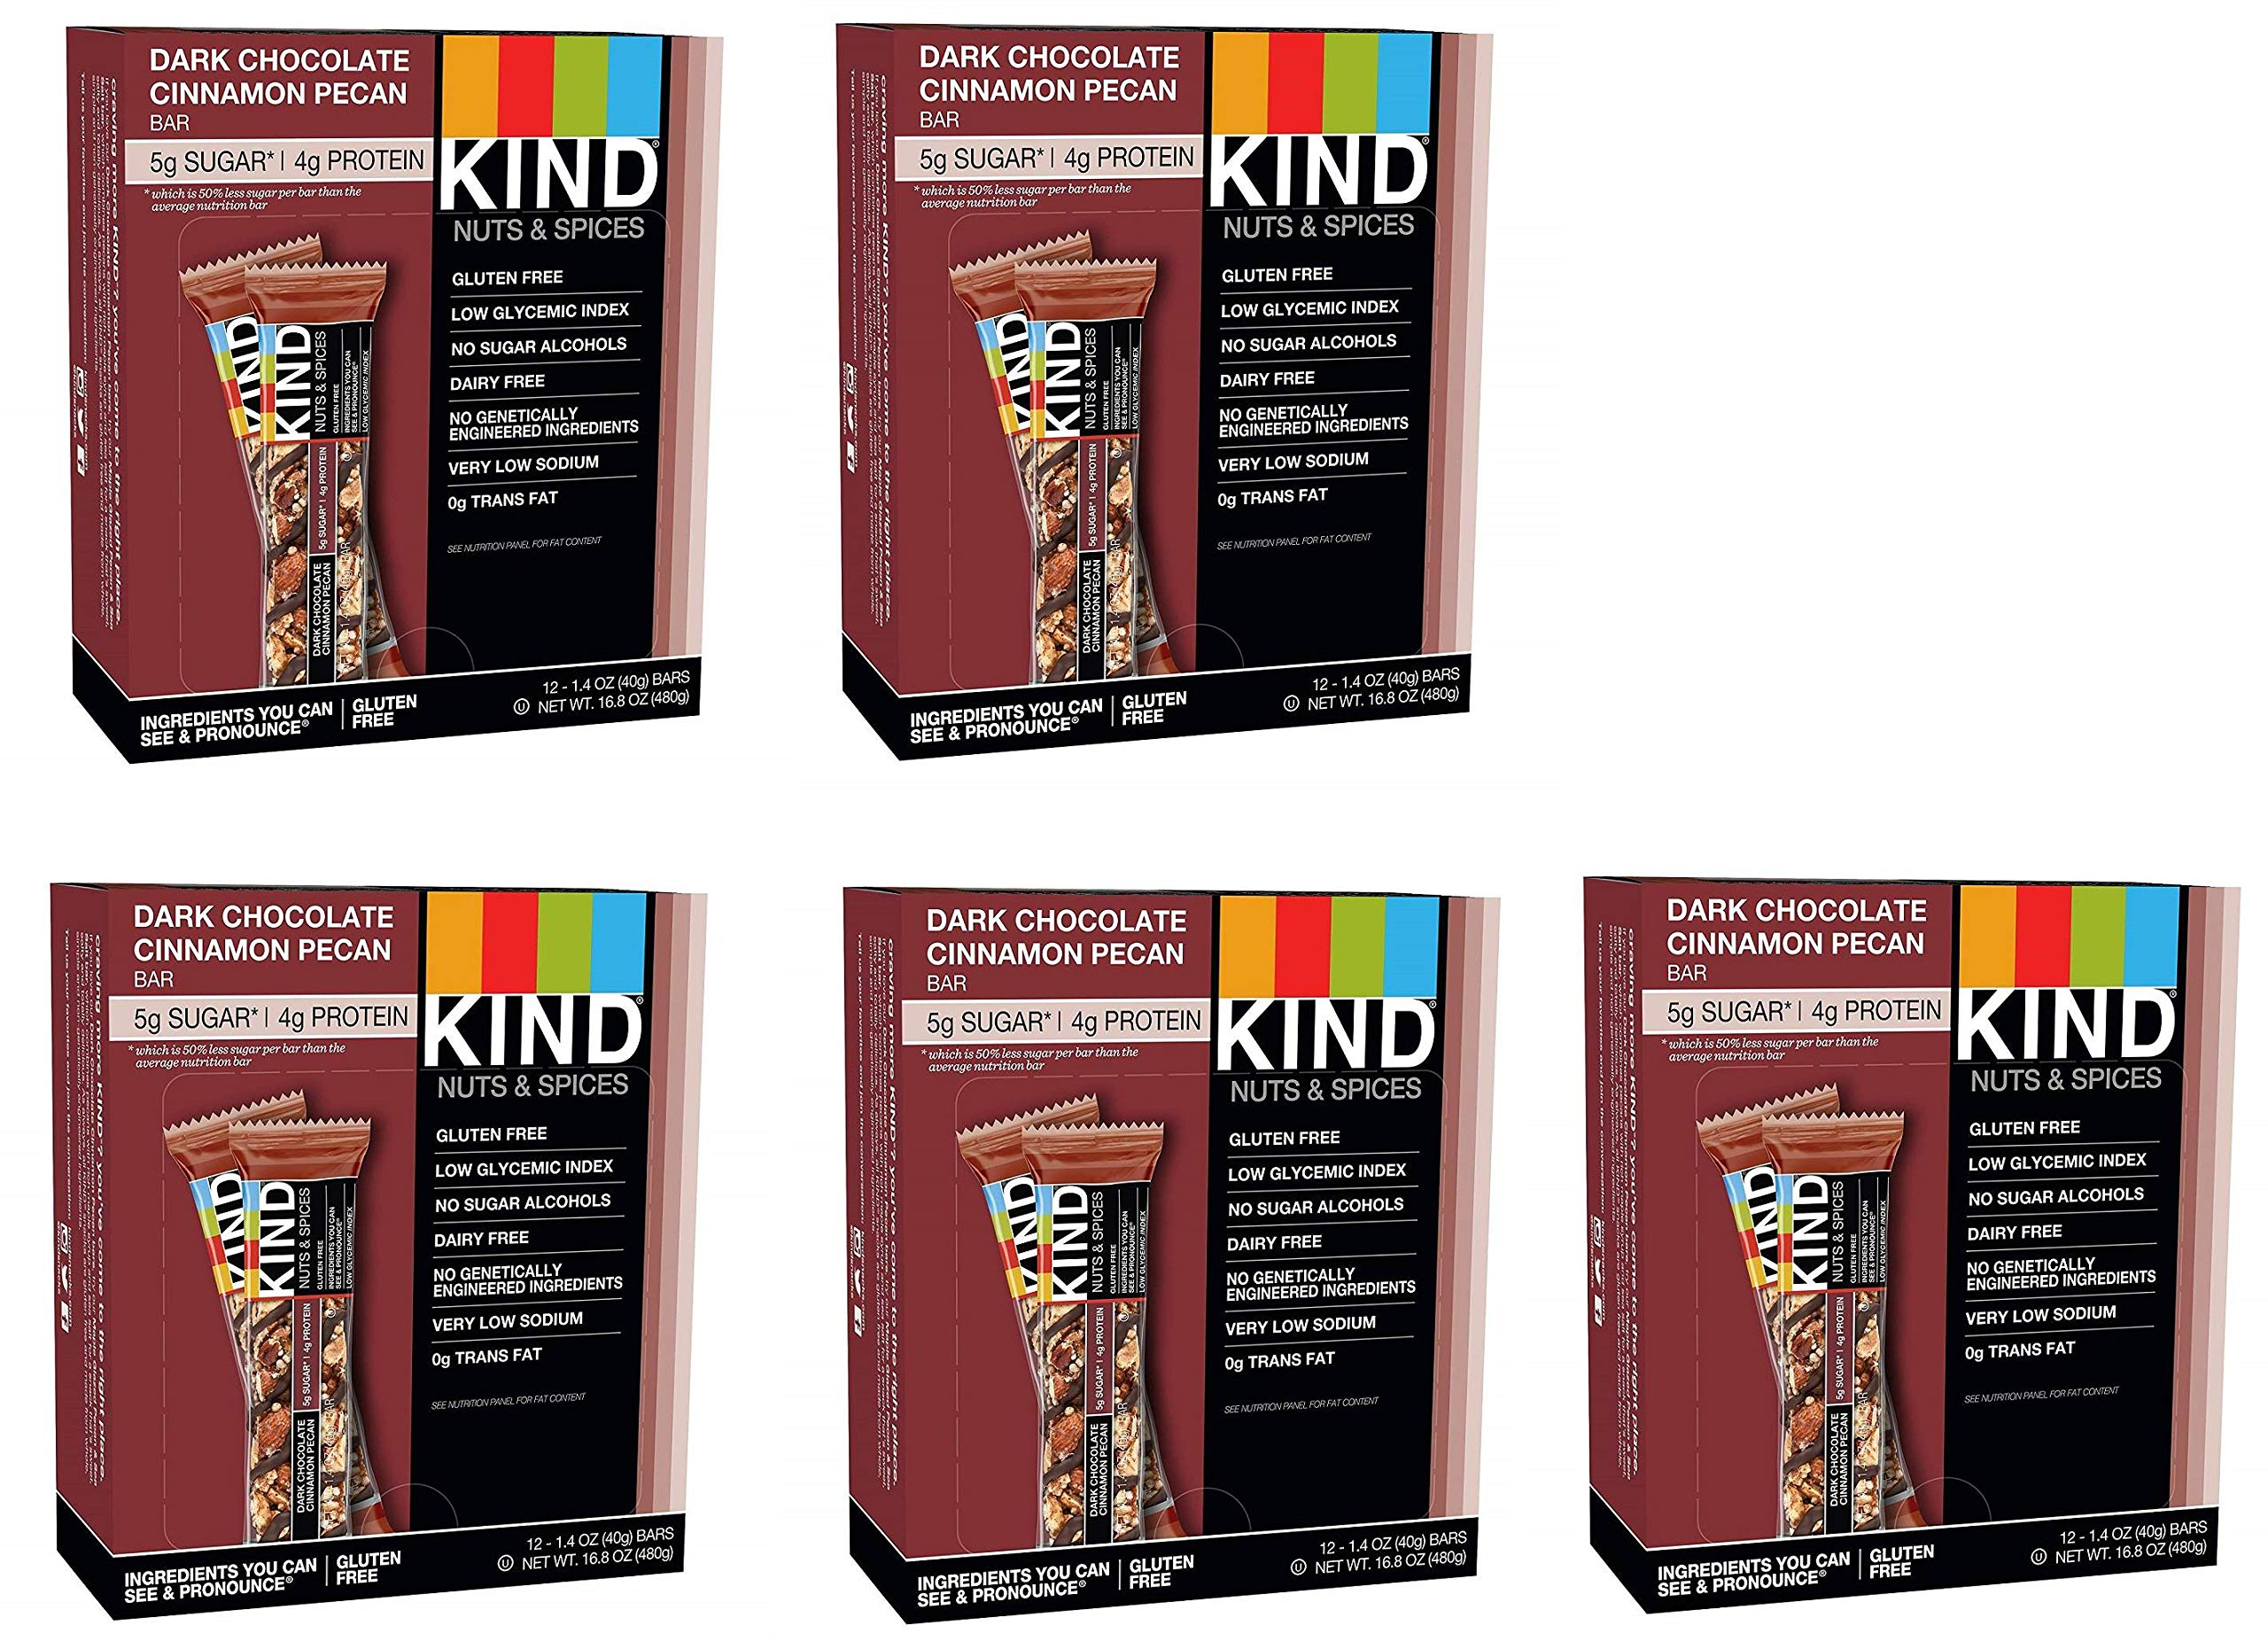 KIND Bars, Dark Chocolate Cinnamon Pecan, Gluten Free, Low Sugar, 1.4oz, 60 Bars